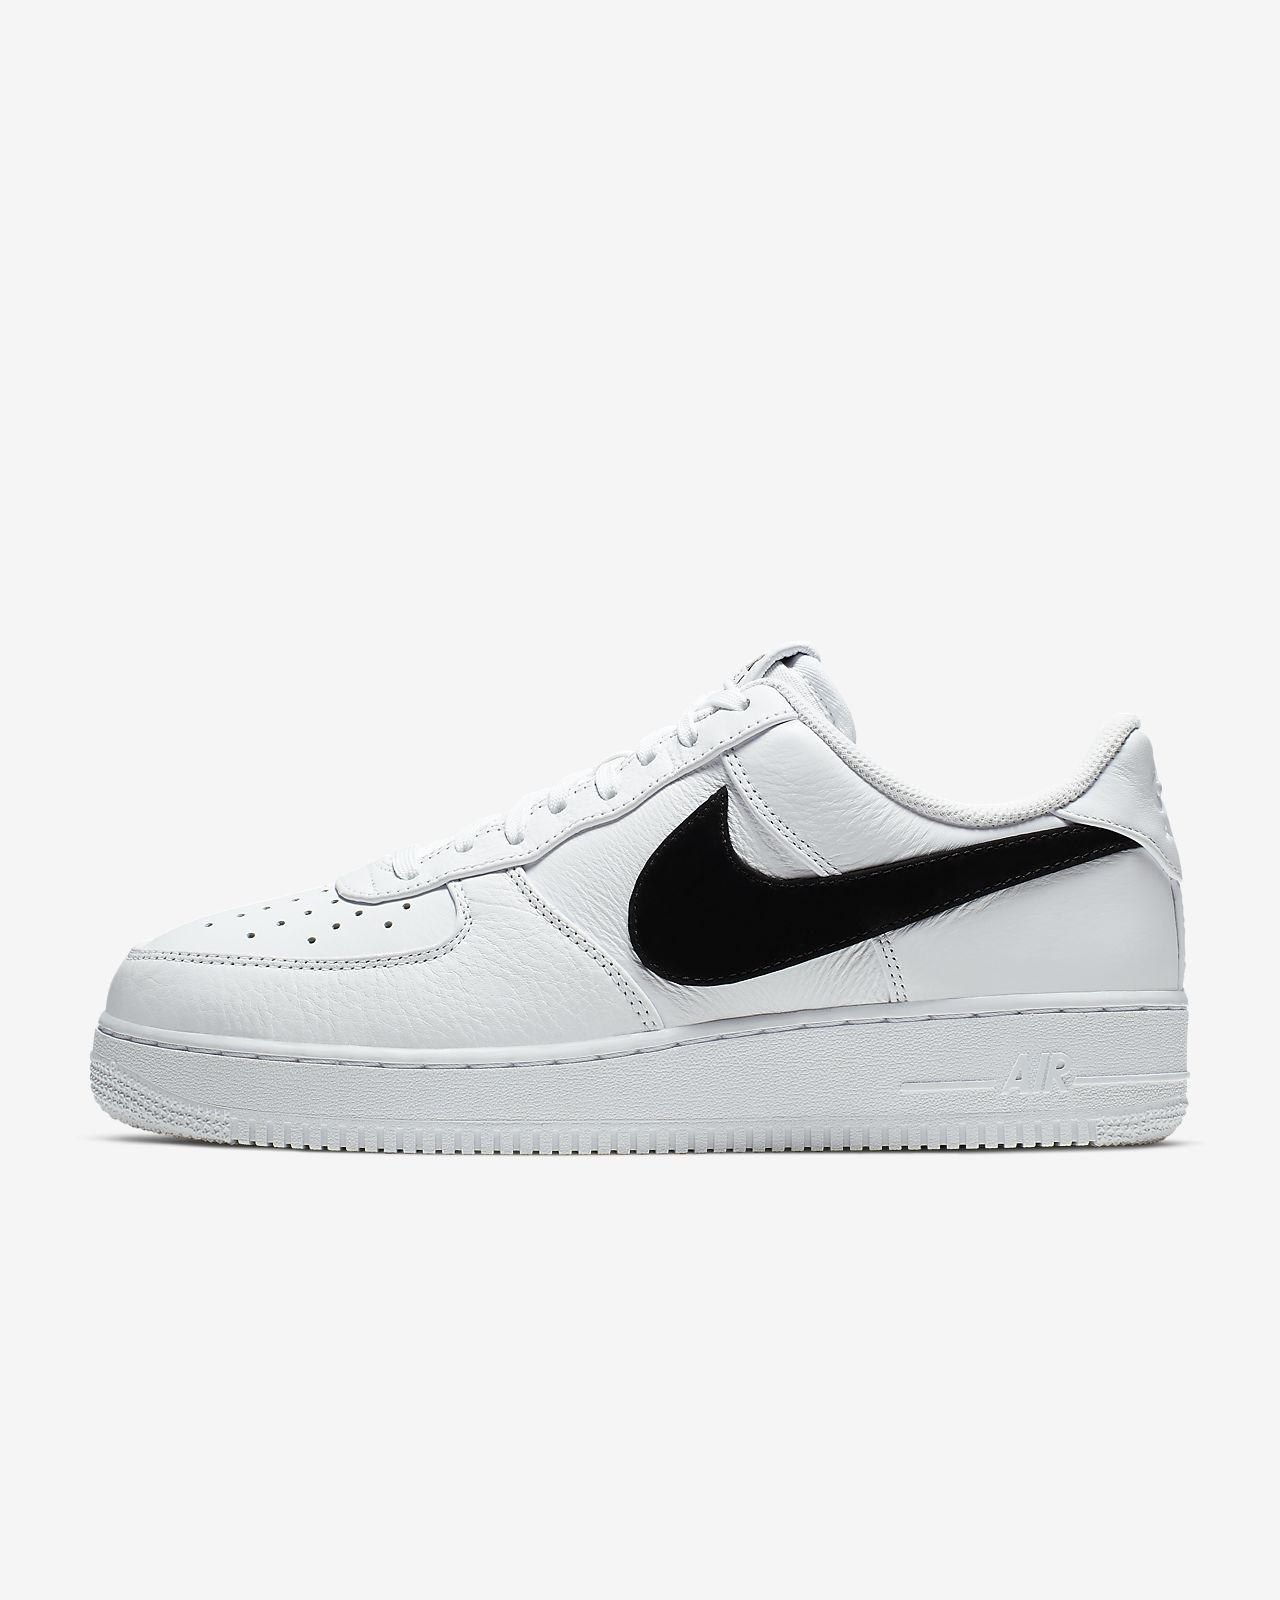 nouveau produit fbf8c b36b2 Nike Air Force 1 '07 Premium 2 Men's Shoe